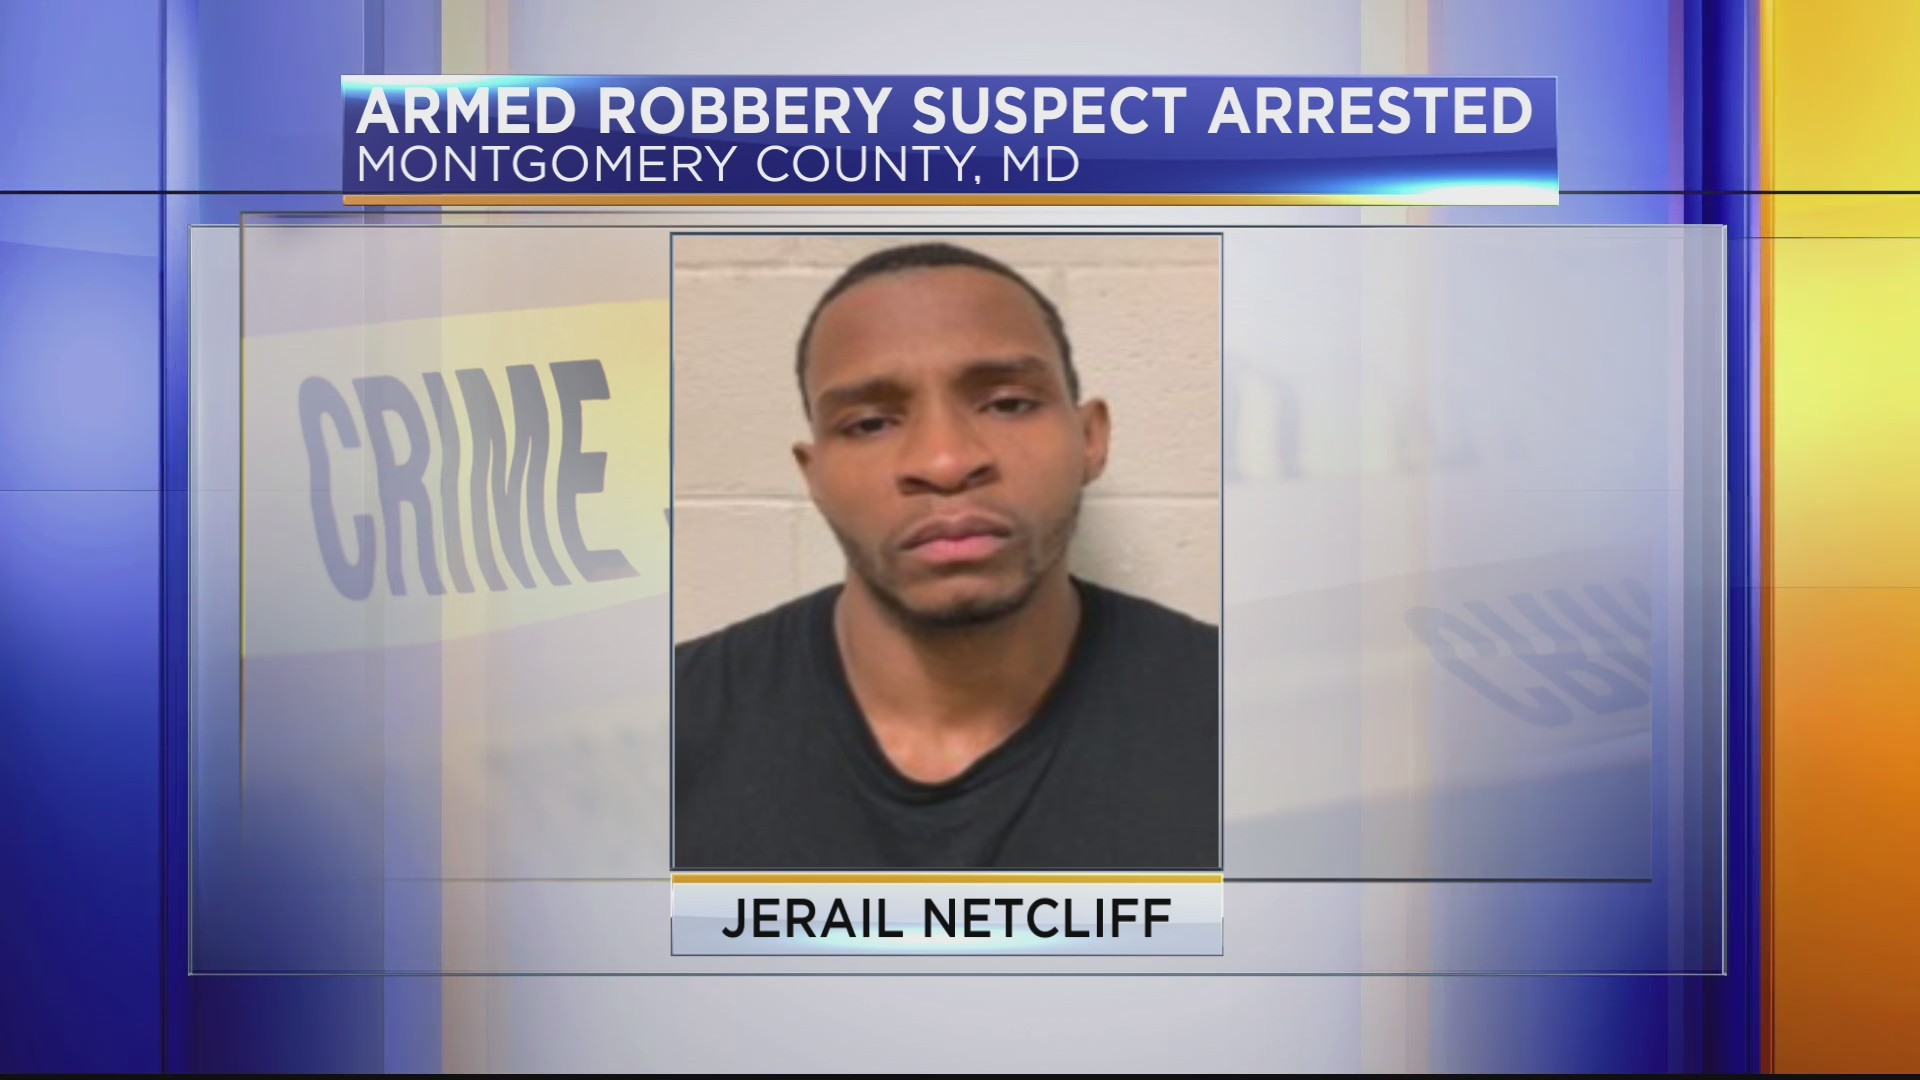 U-Haul van leads police to arrest man for armed robbery